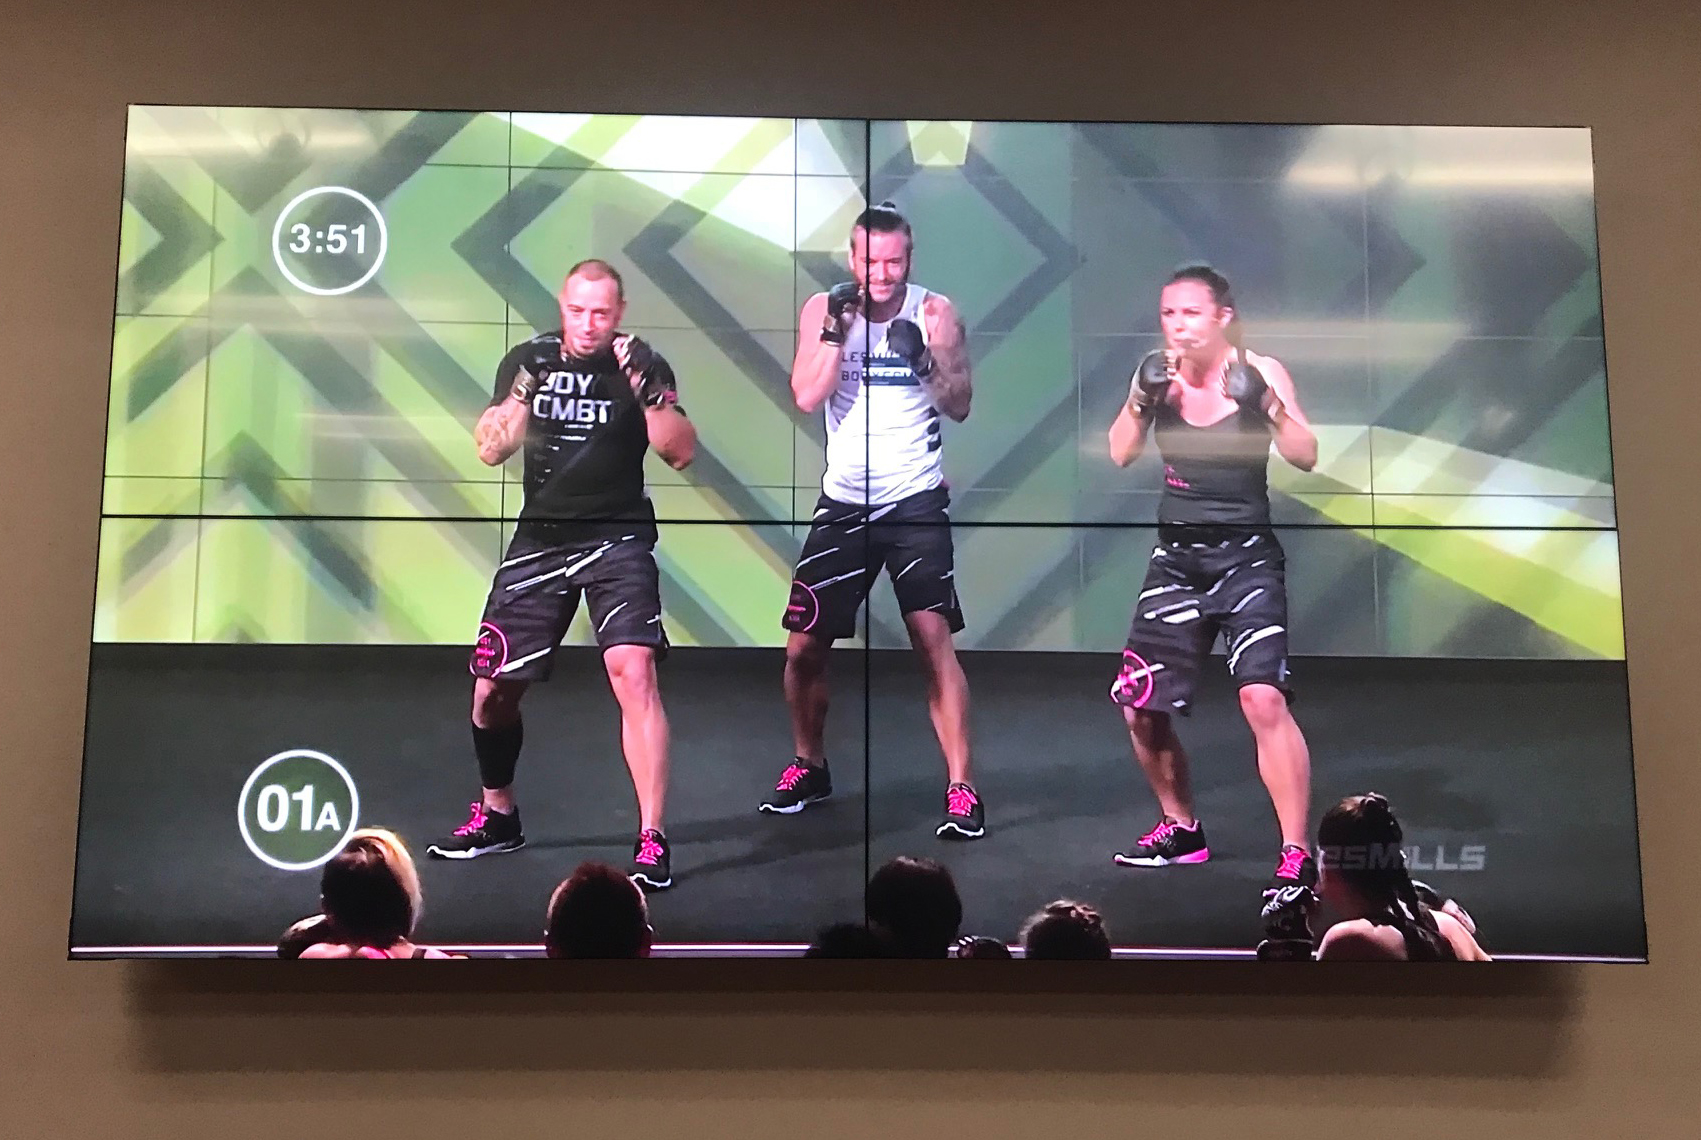 Virtual Fitness Systems - LED/LCD TV Video Walls - Supreme Audio